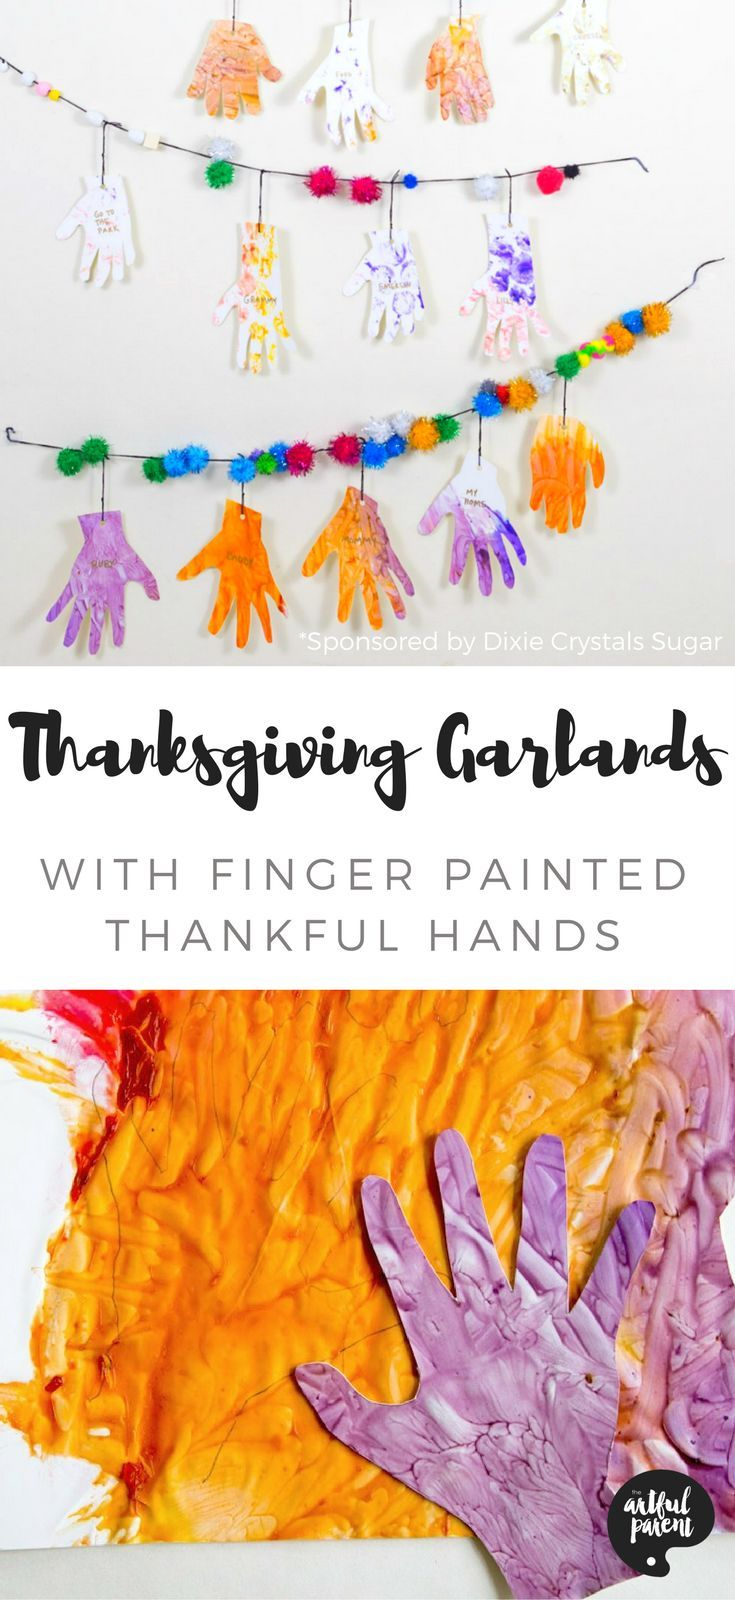 Thanksgiving garlands are a great way for kids to celebrate what they are thankful for. Finger painted hand tracings are paired with festive pom pom garlands.